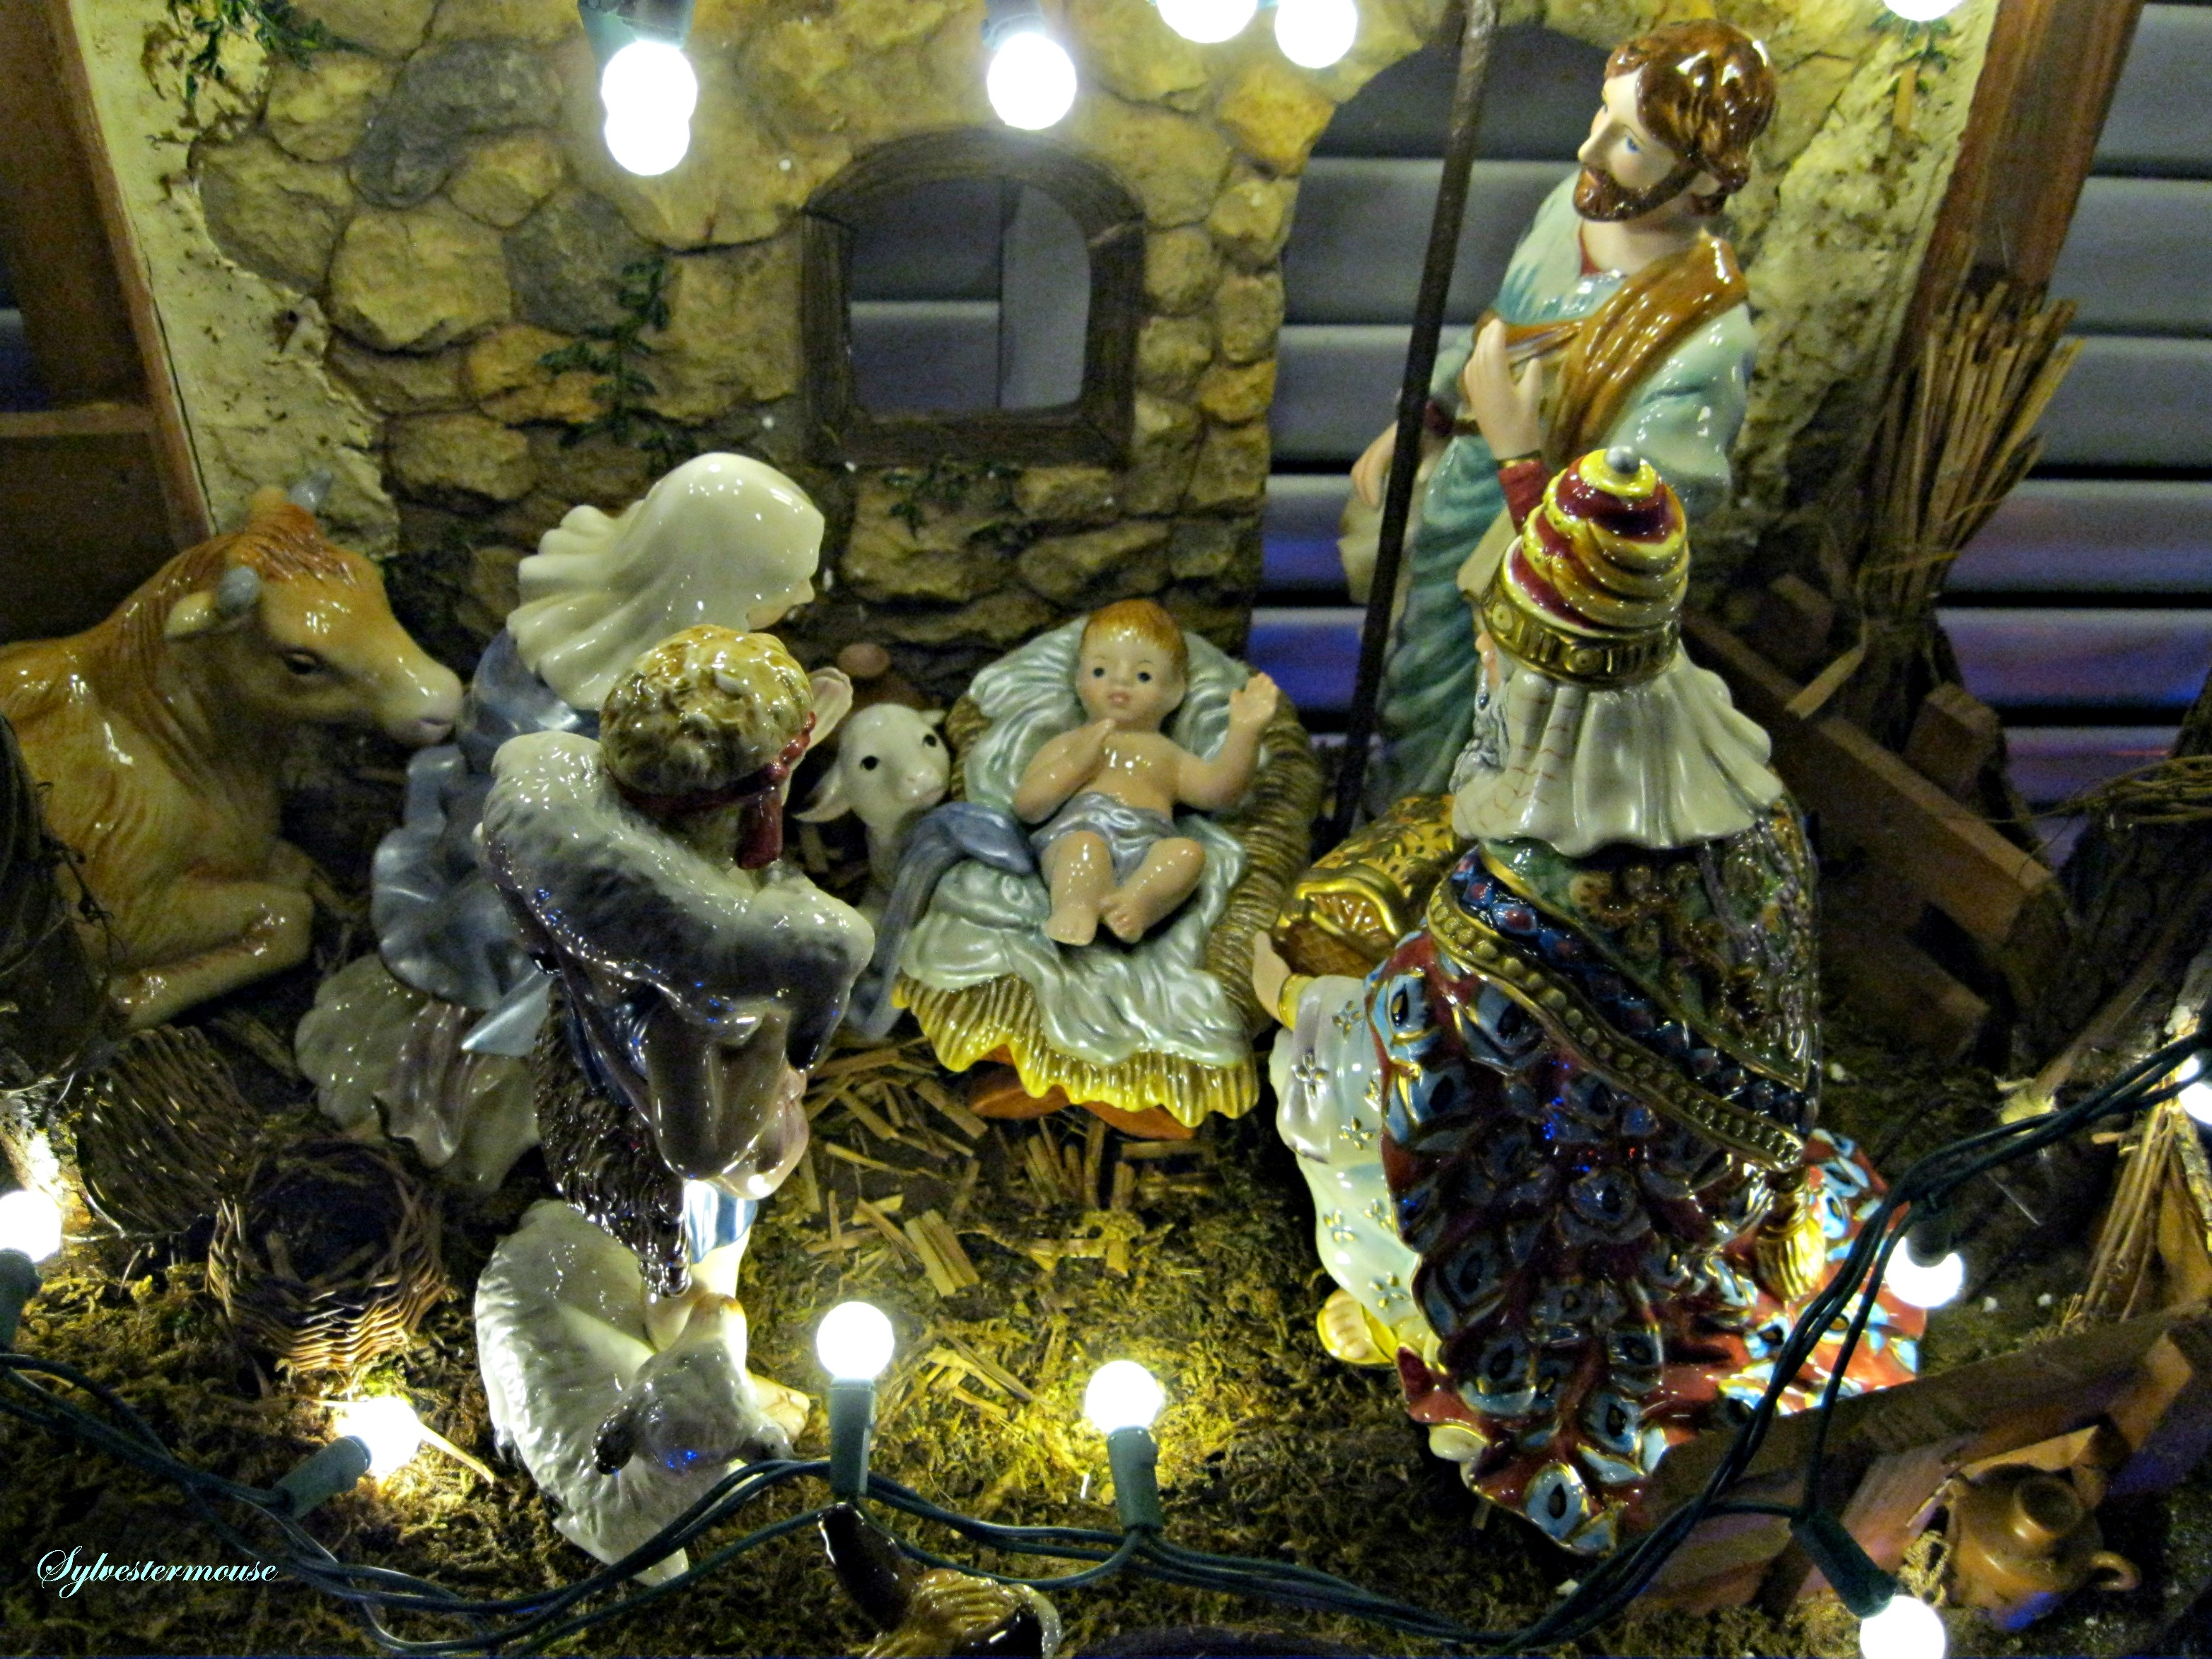 Nativity Scene photo by Sylvestermouse